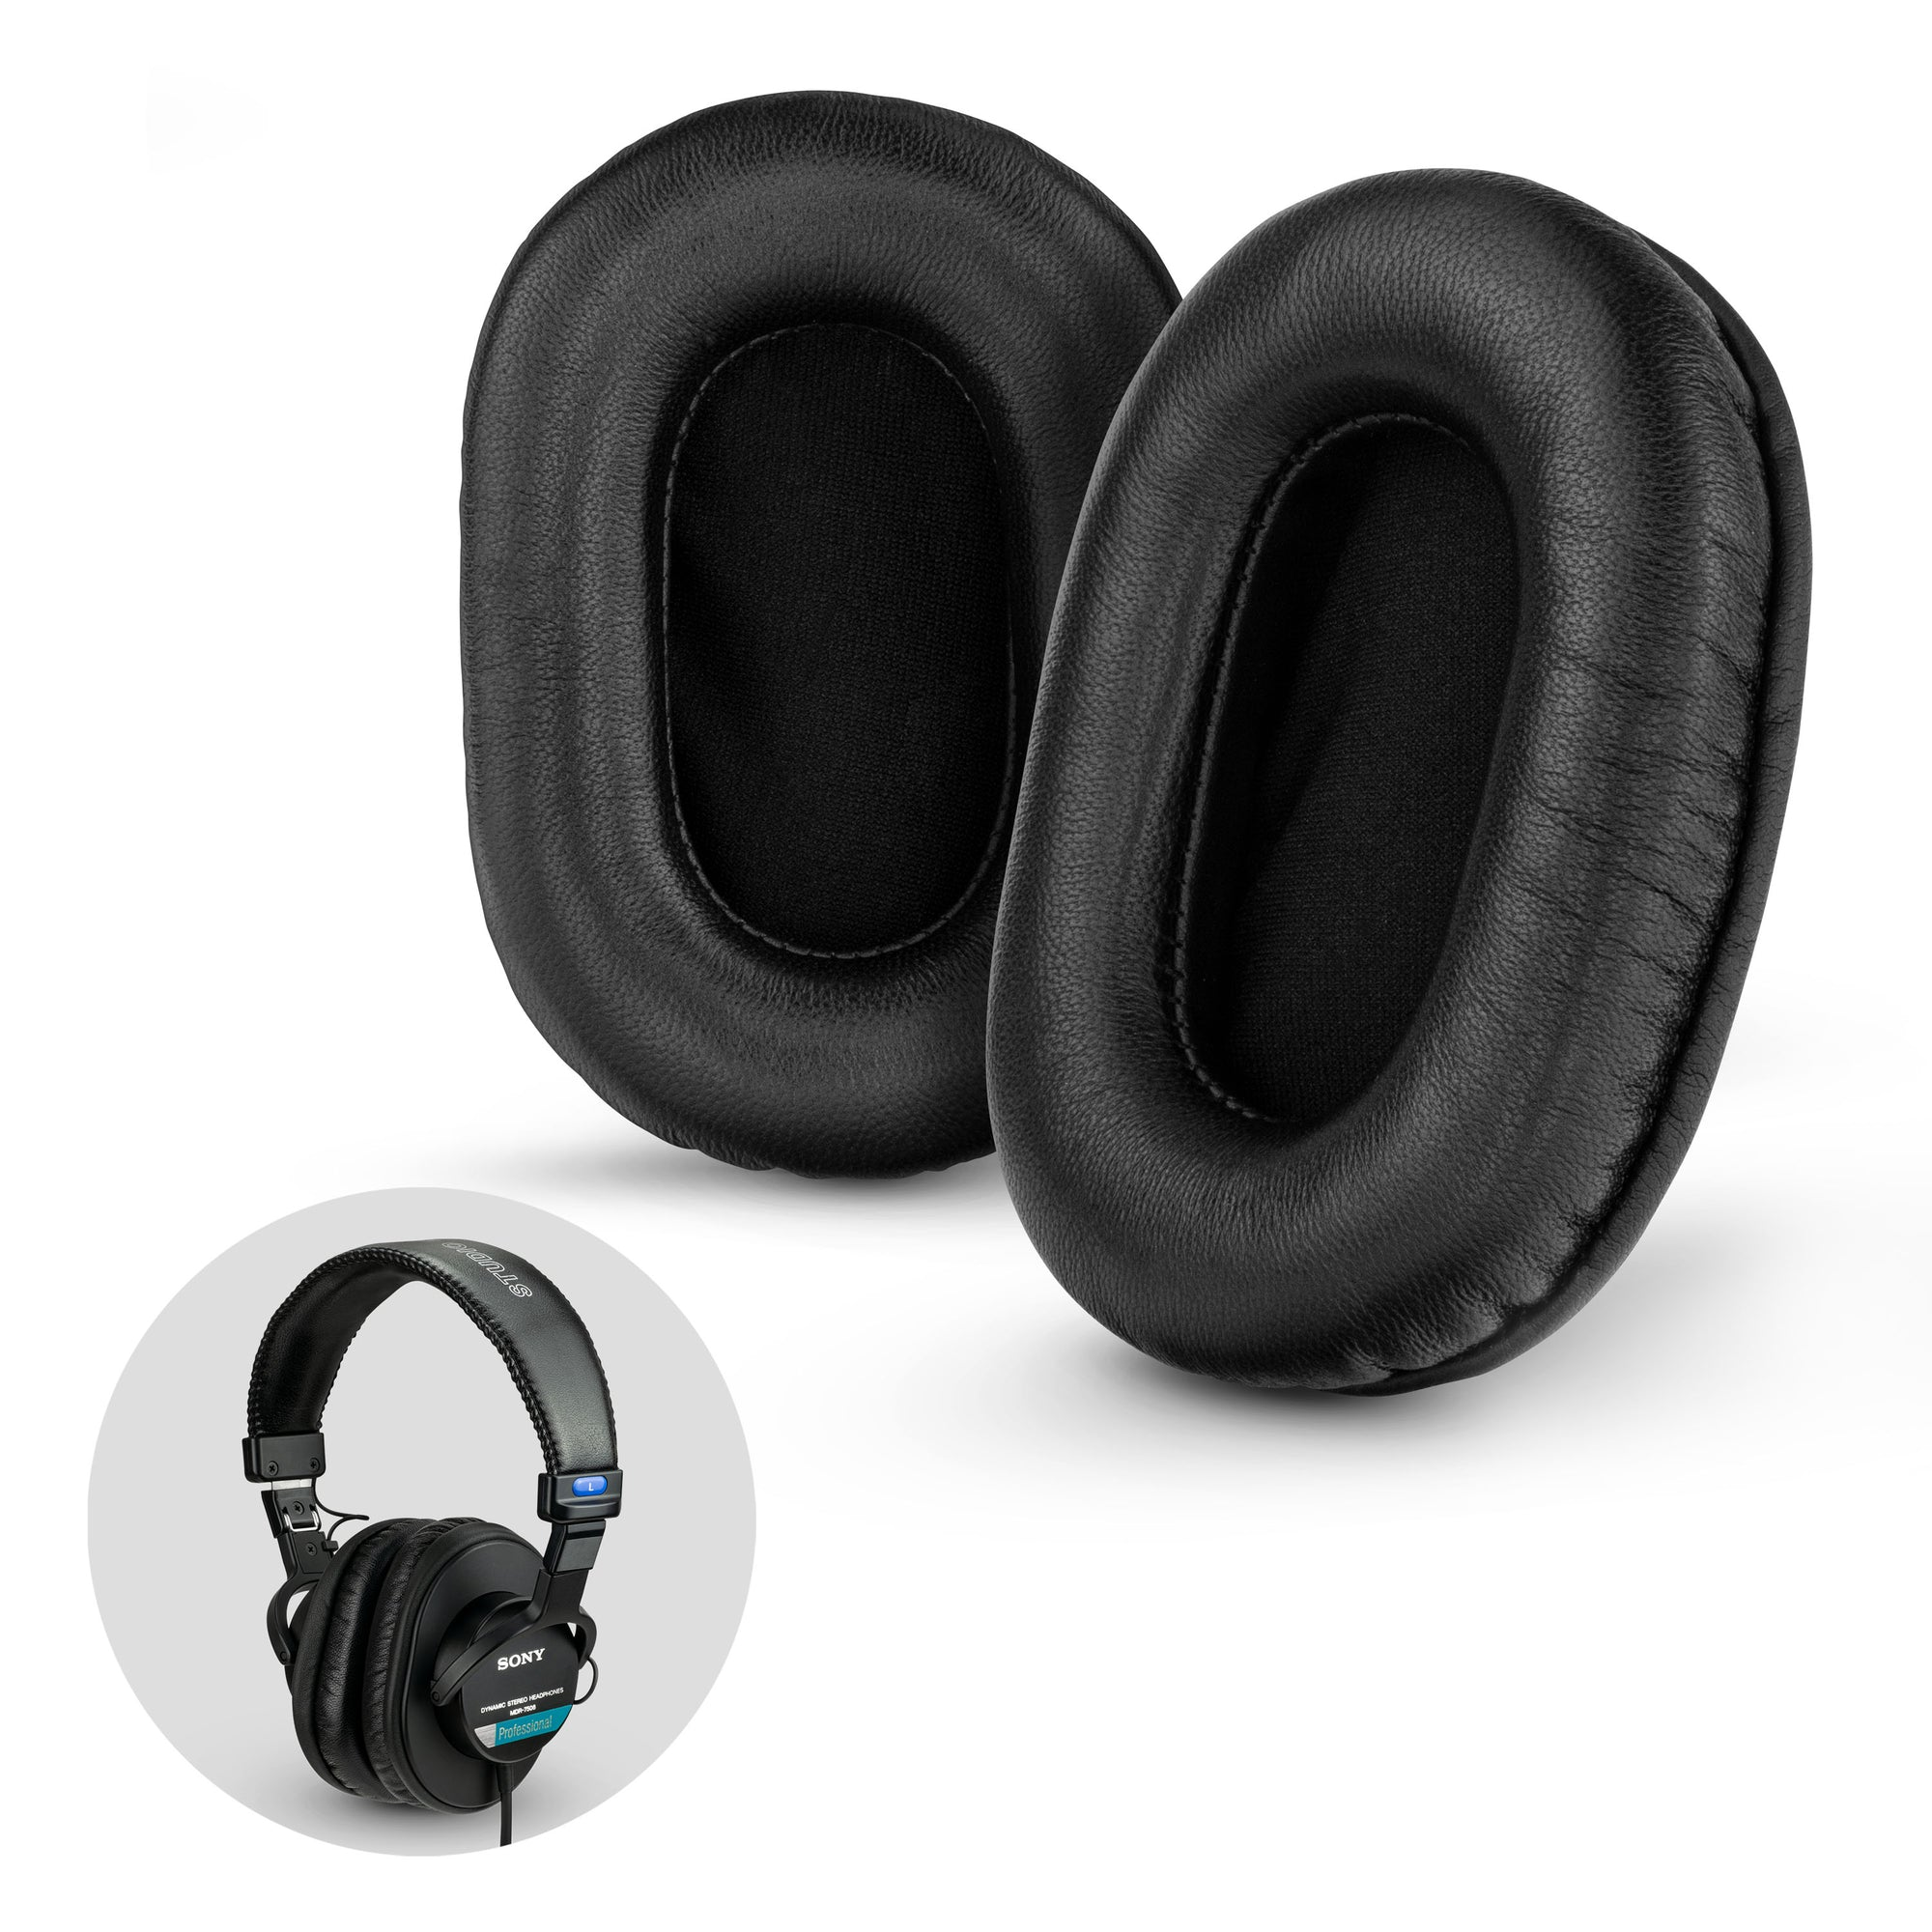 Sheepskin Leather Replacement Earpads for SONY MDR-7506 / V6 / CD900ST Headphones